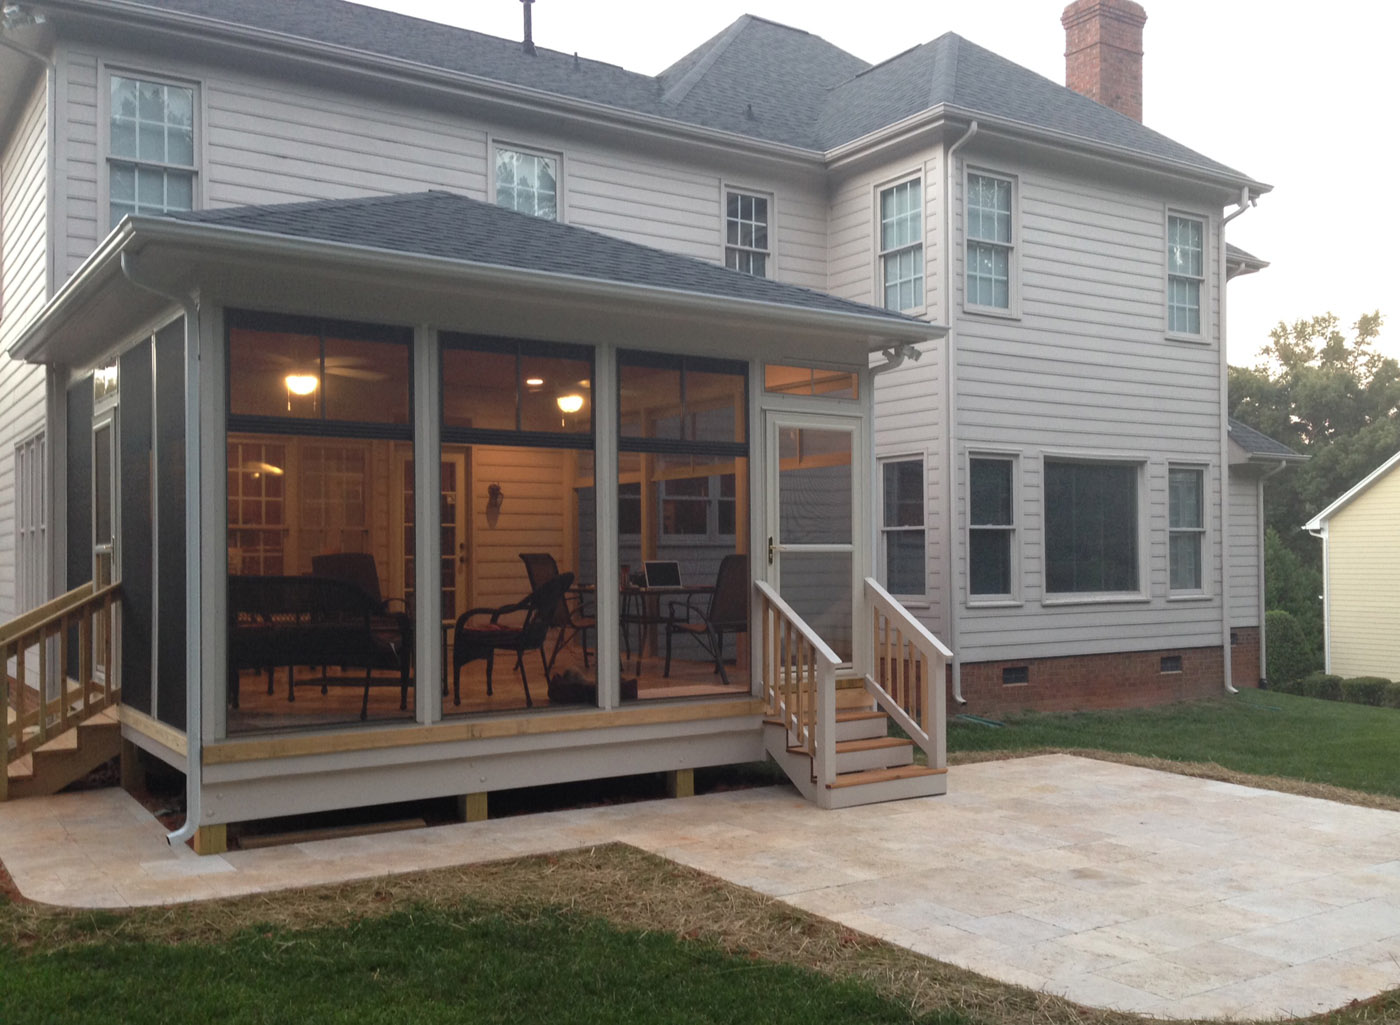 A salt lake city screened in porch for luxurious outdoor for Shed roof screened porch